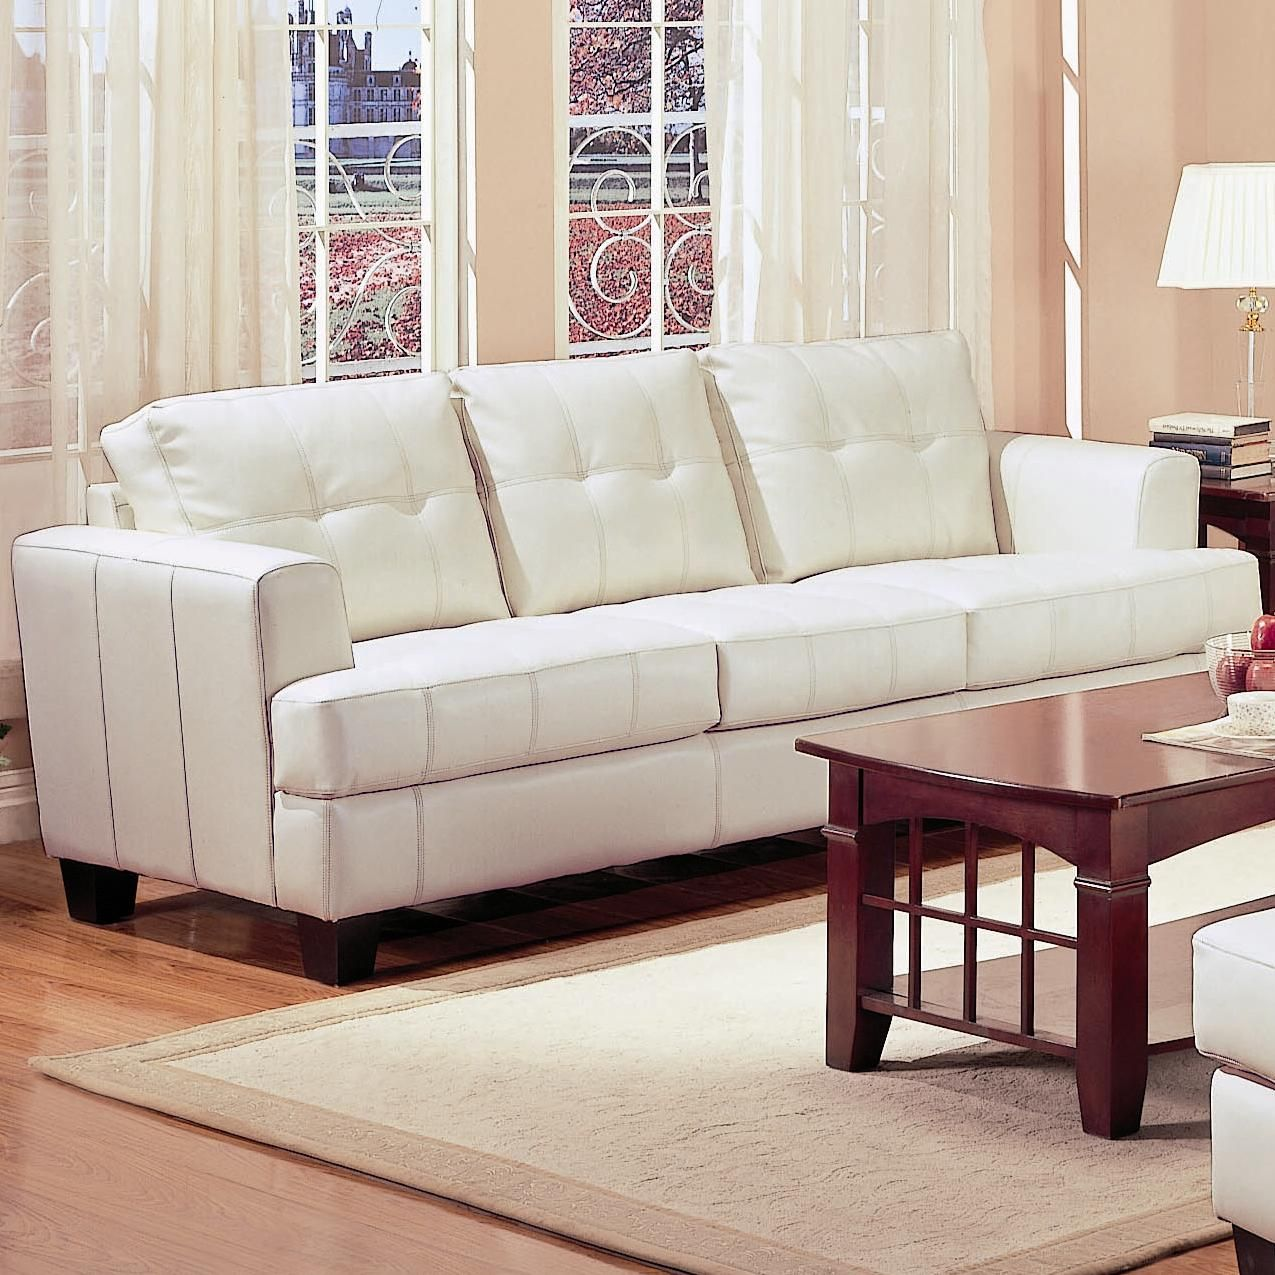 ashley furniture modern sofa best material for dogs that shed back gallery this in cream the more casual sitting area will sit with 2 matching chairs same style abstract wool rug and